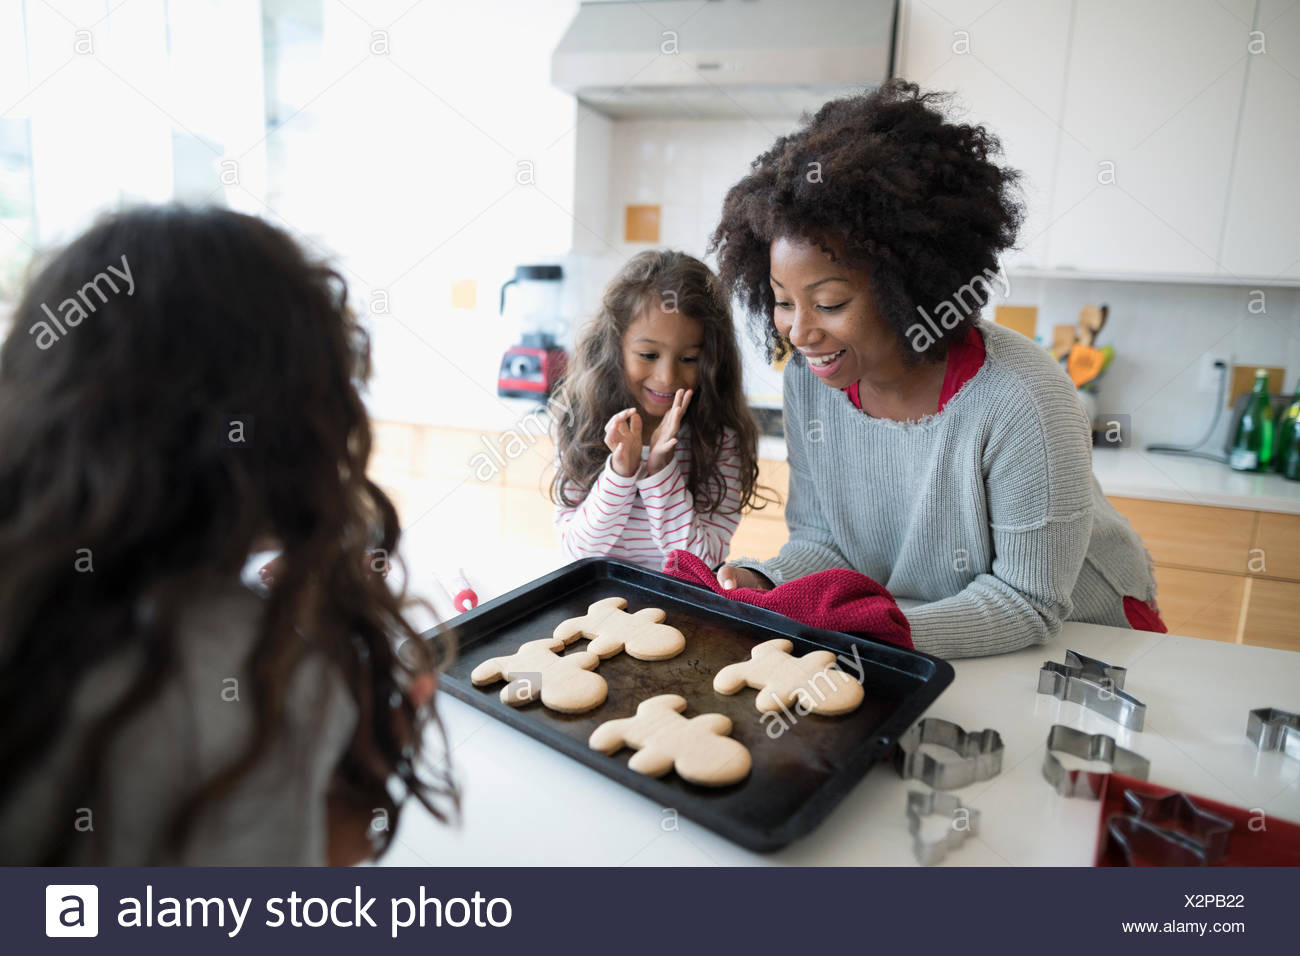 Mère et filles baking christmas gingerbread cookies in kitchen Photo Stock